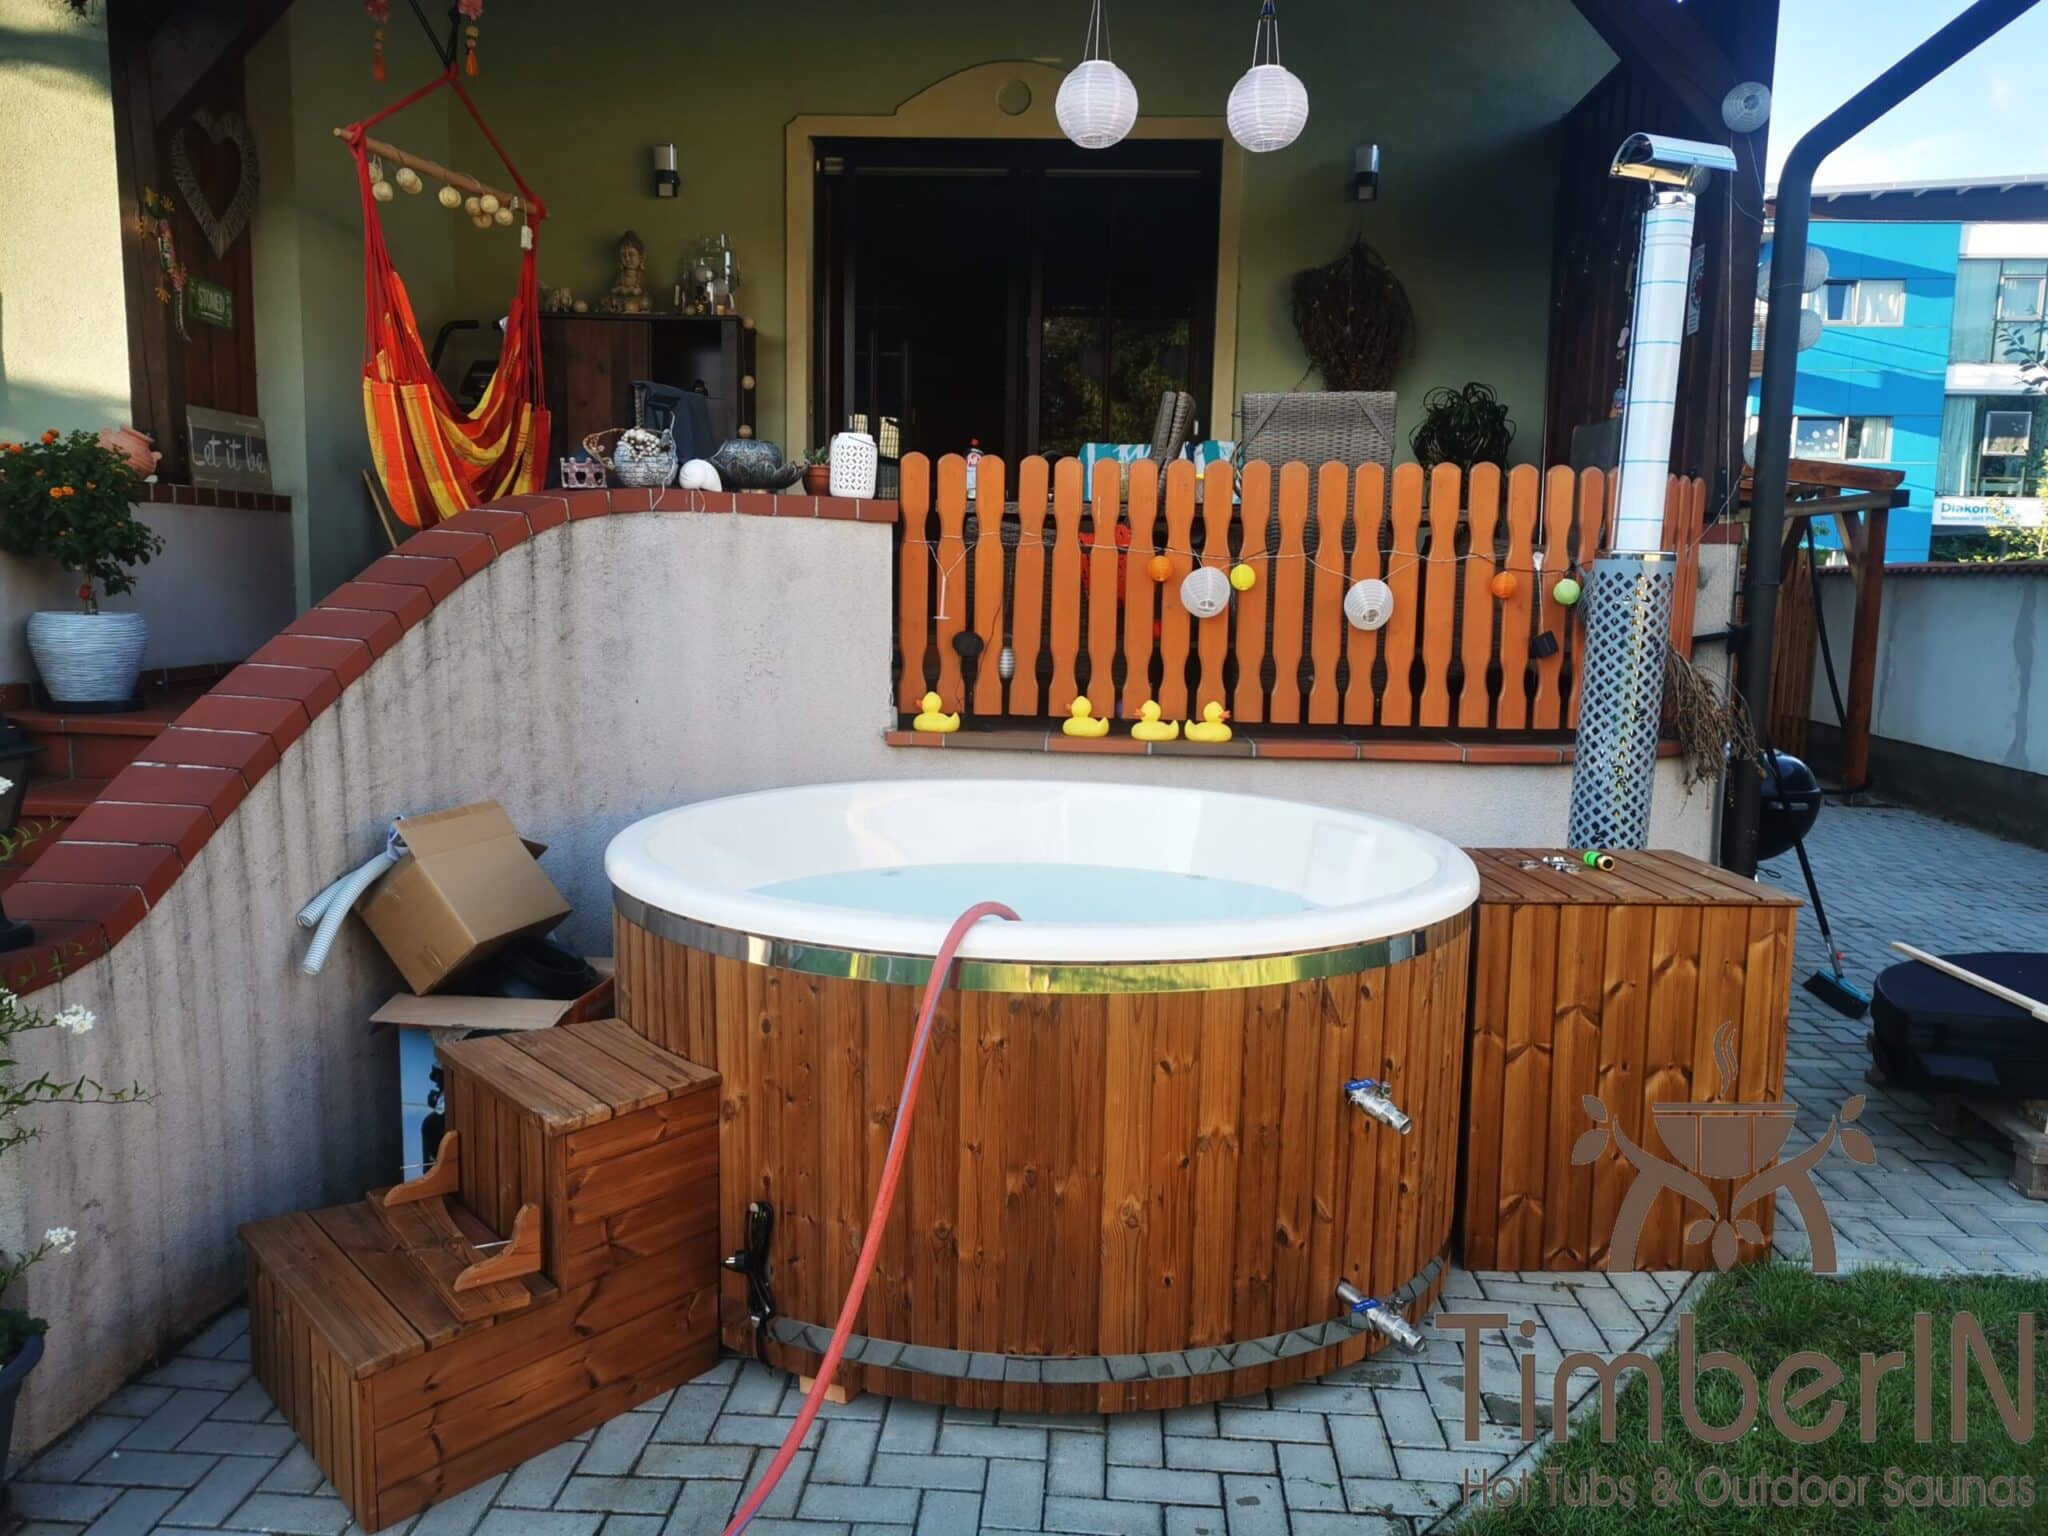 Badezuber Badefass Hot Tube mit Whirlpool Holzofen TimberIN Rojal Andreas Gols Oesterreich 1 scaled